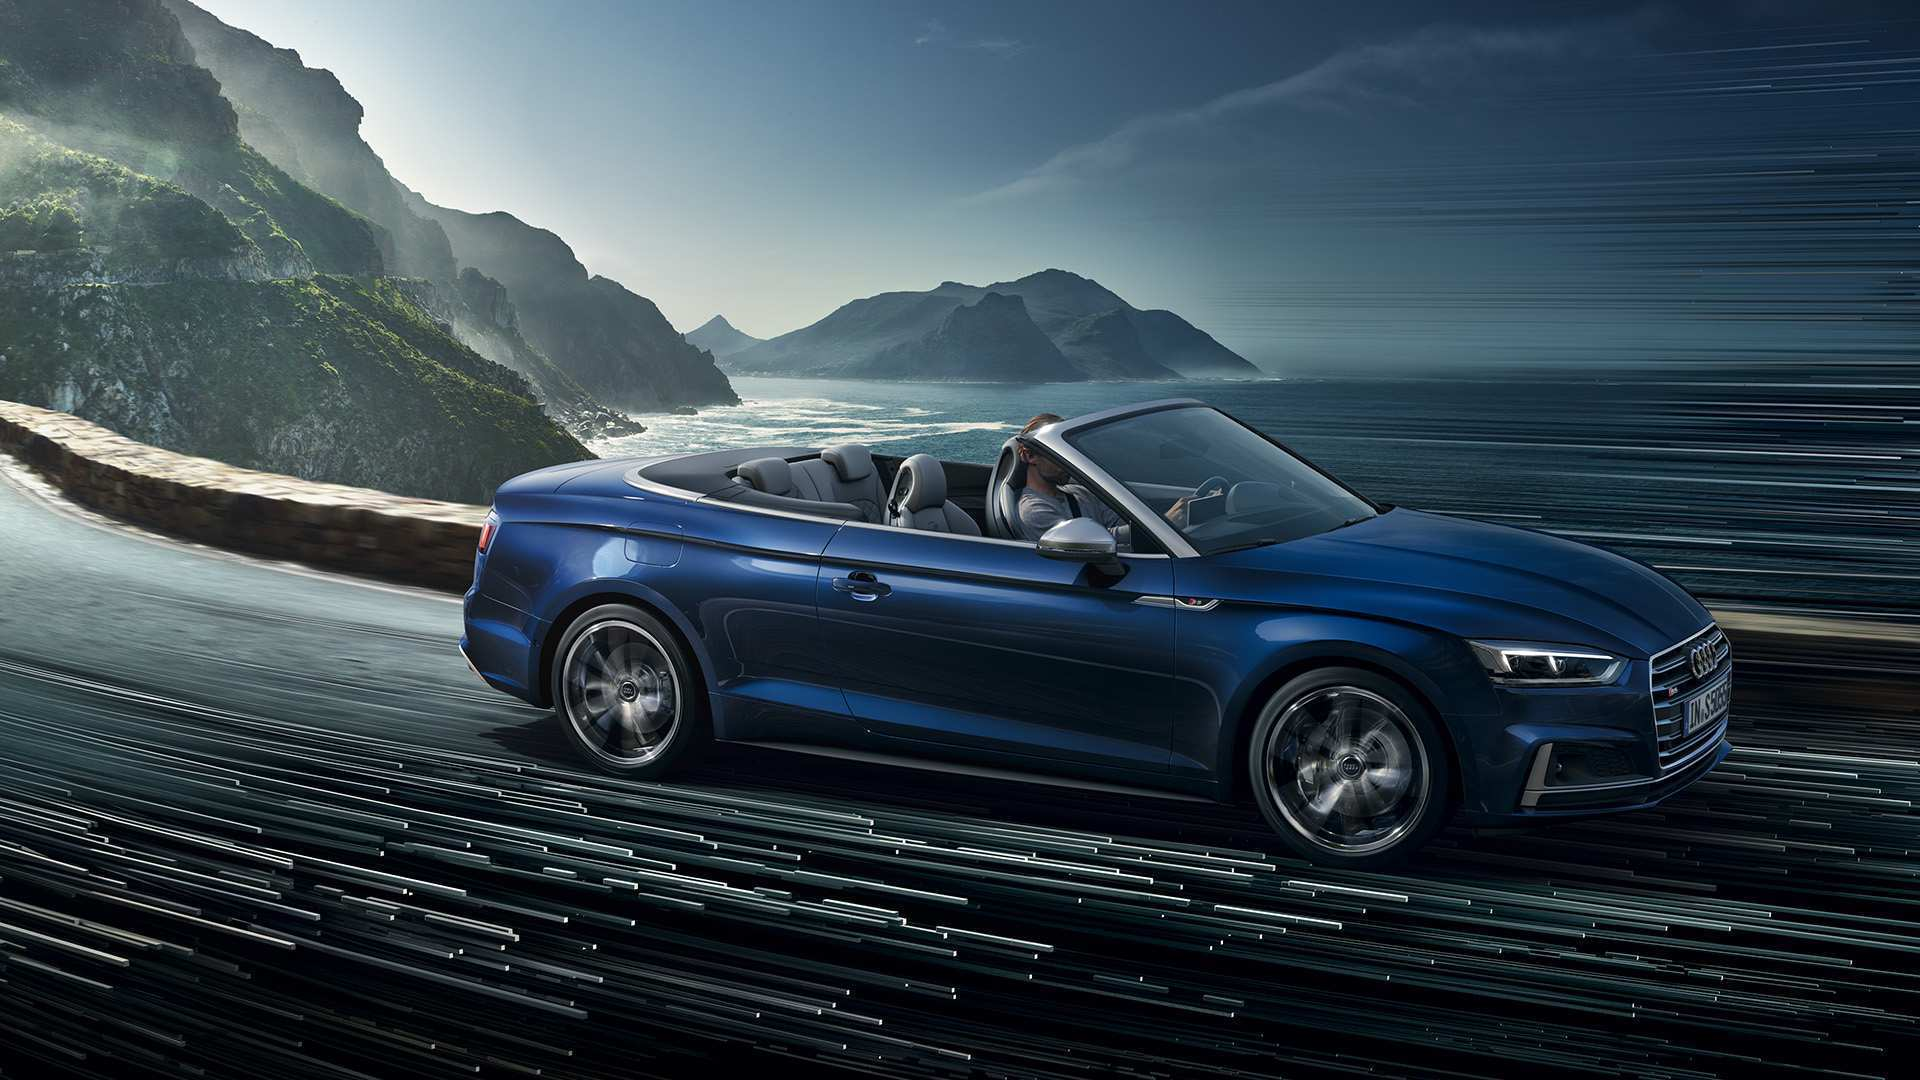 35 New 2019 Audi S5 Cabriolet Wallpaper